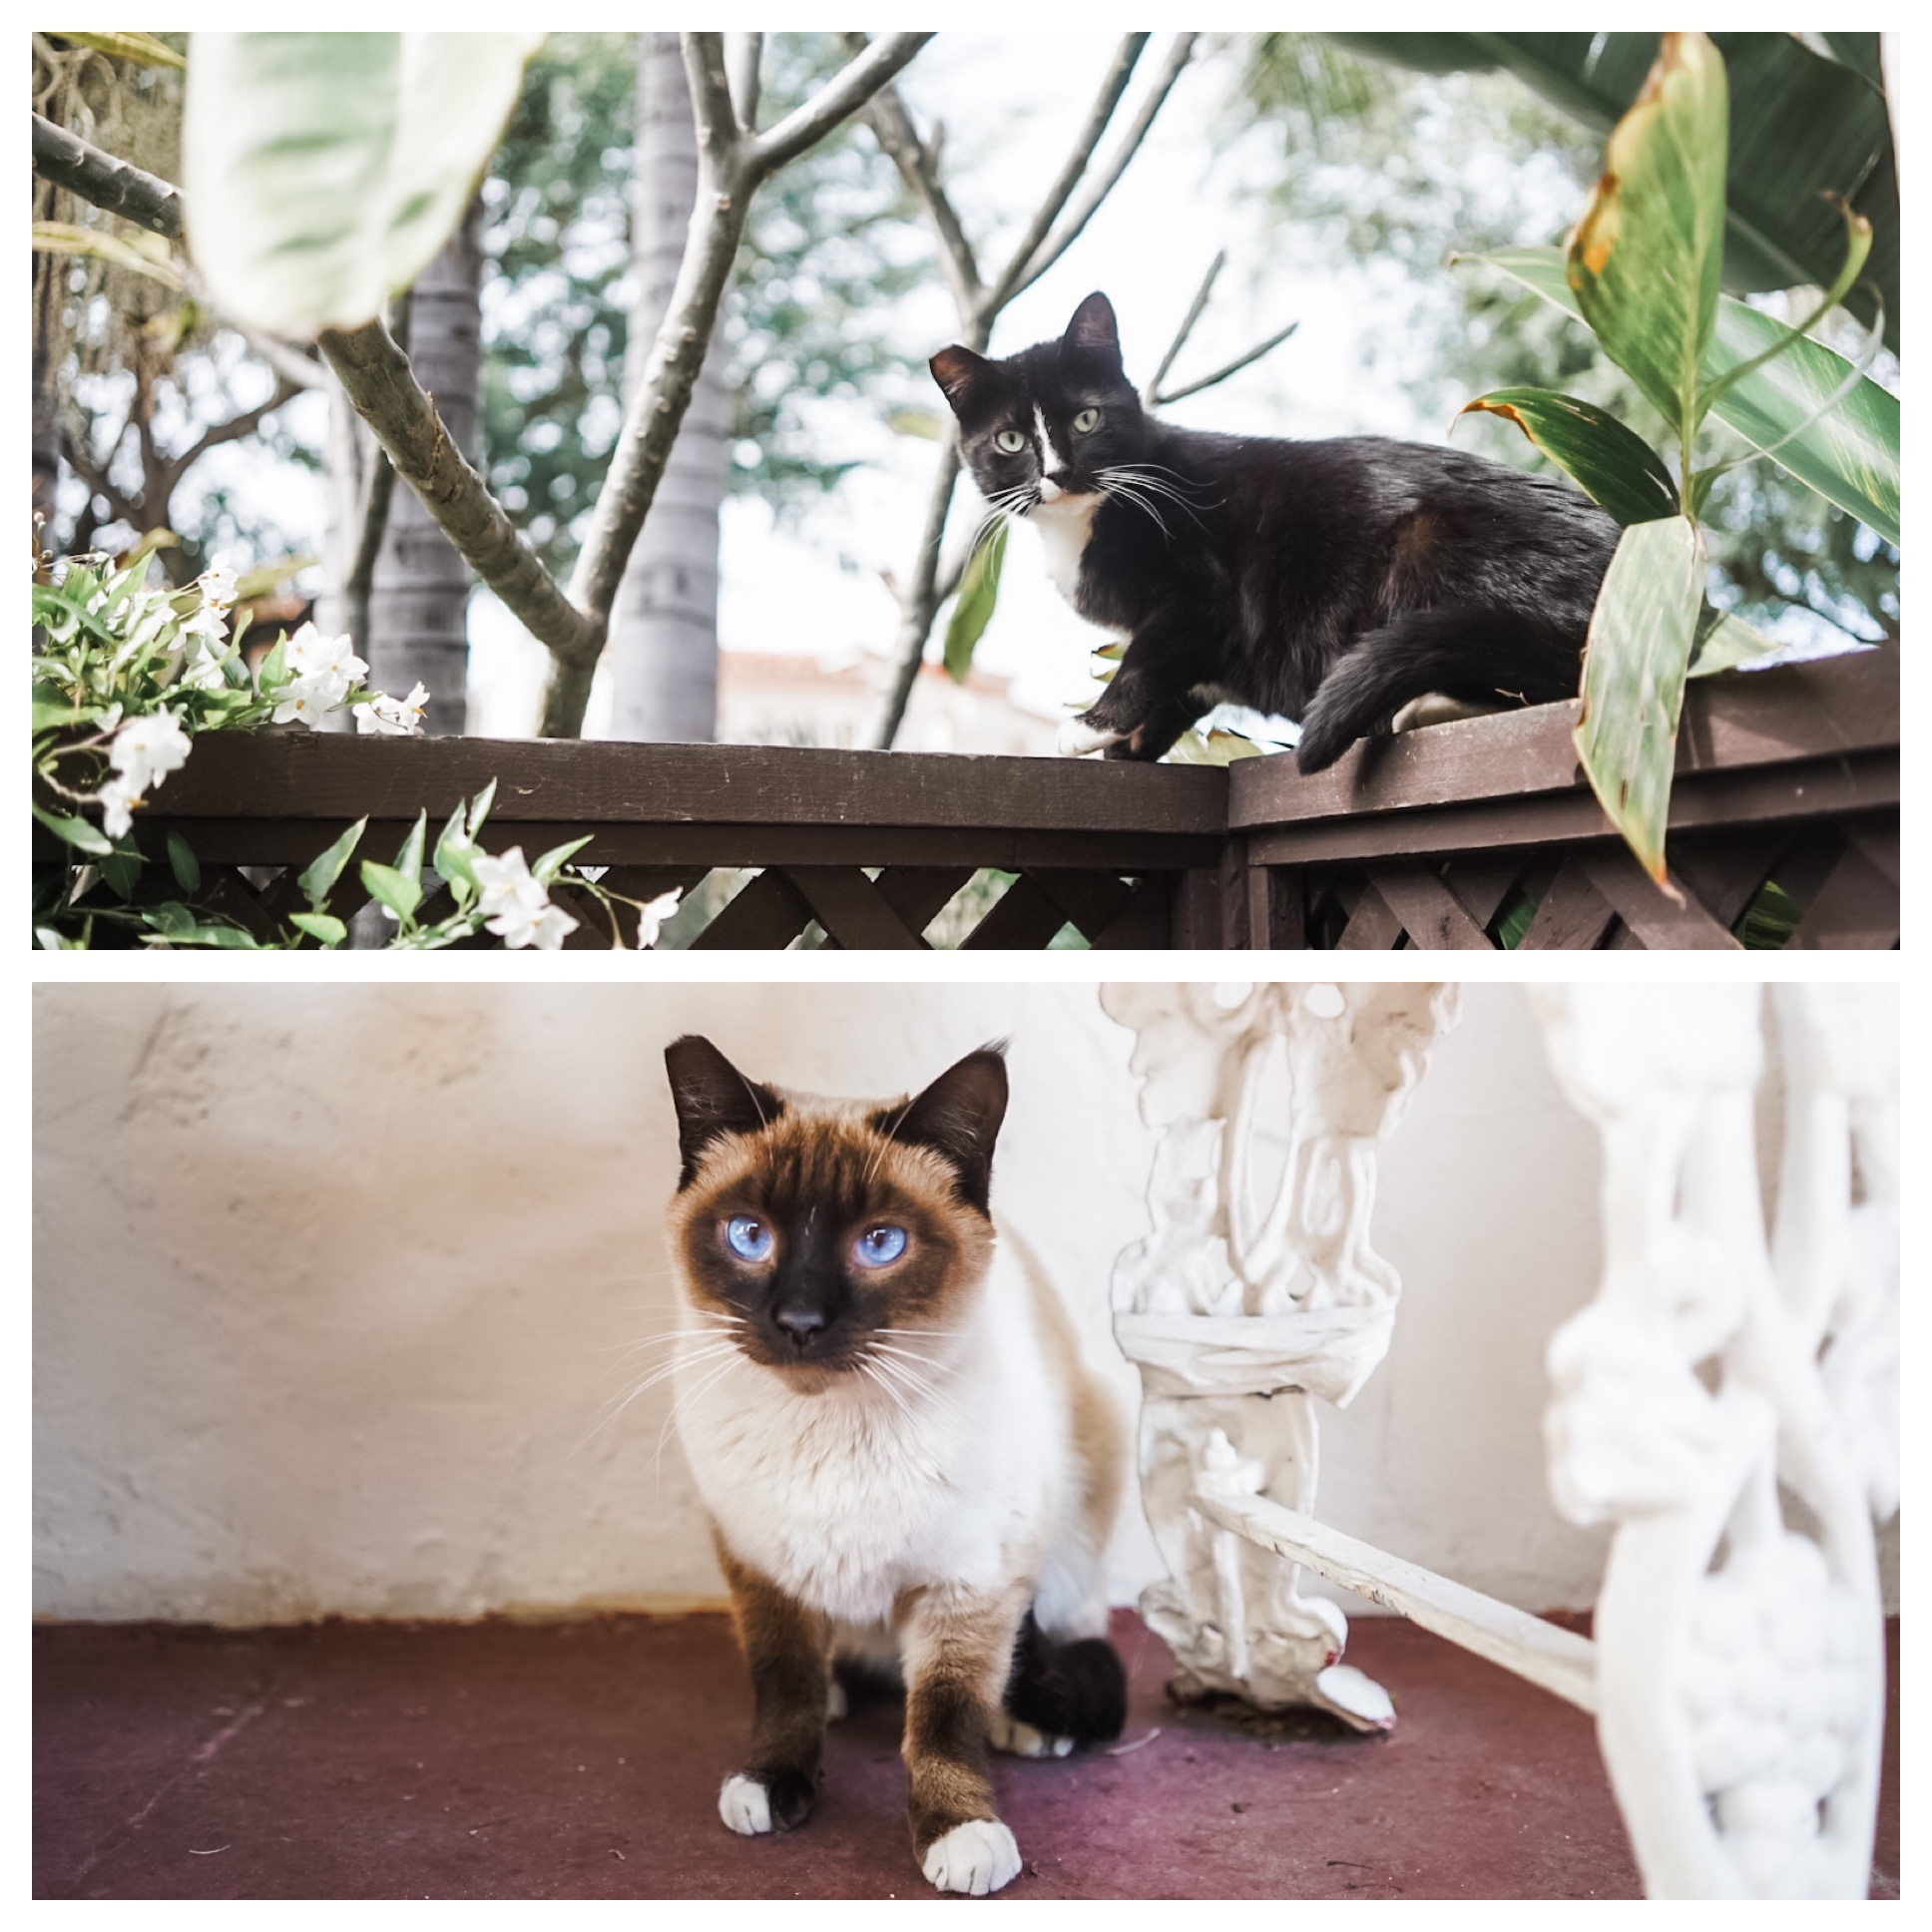 Two cats pictured. Black and white cat. Brown and white cat with blue eyes.